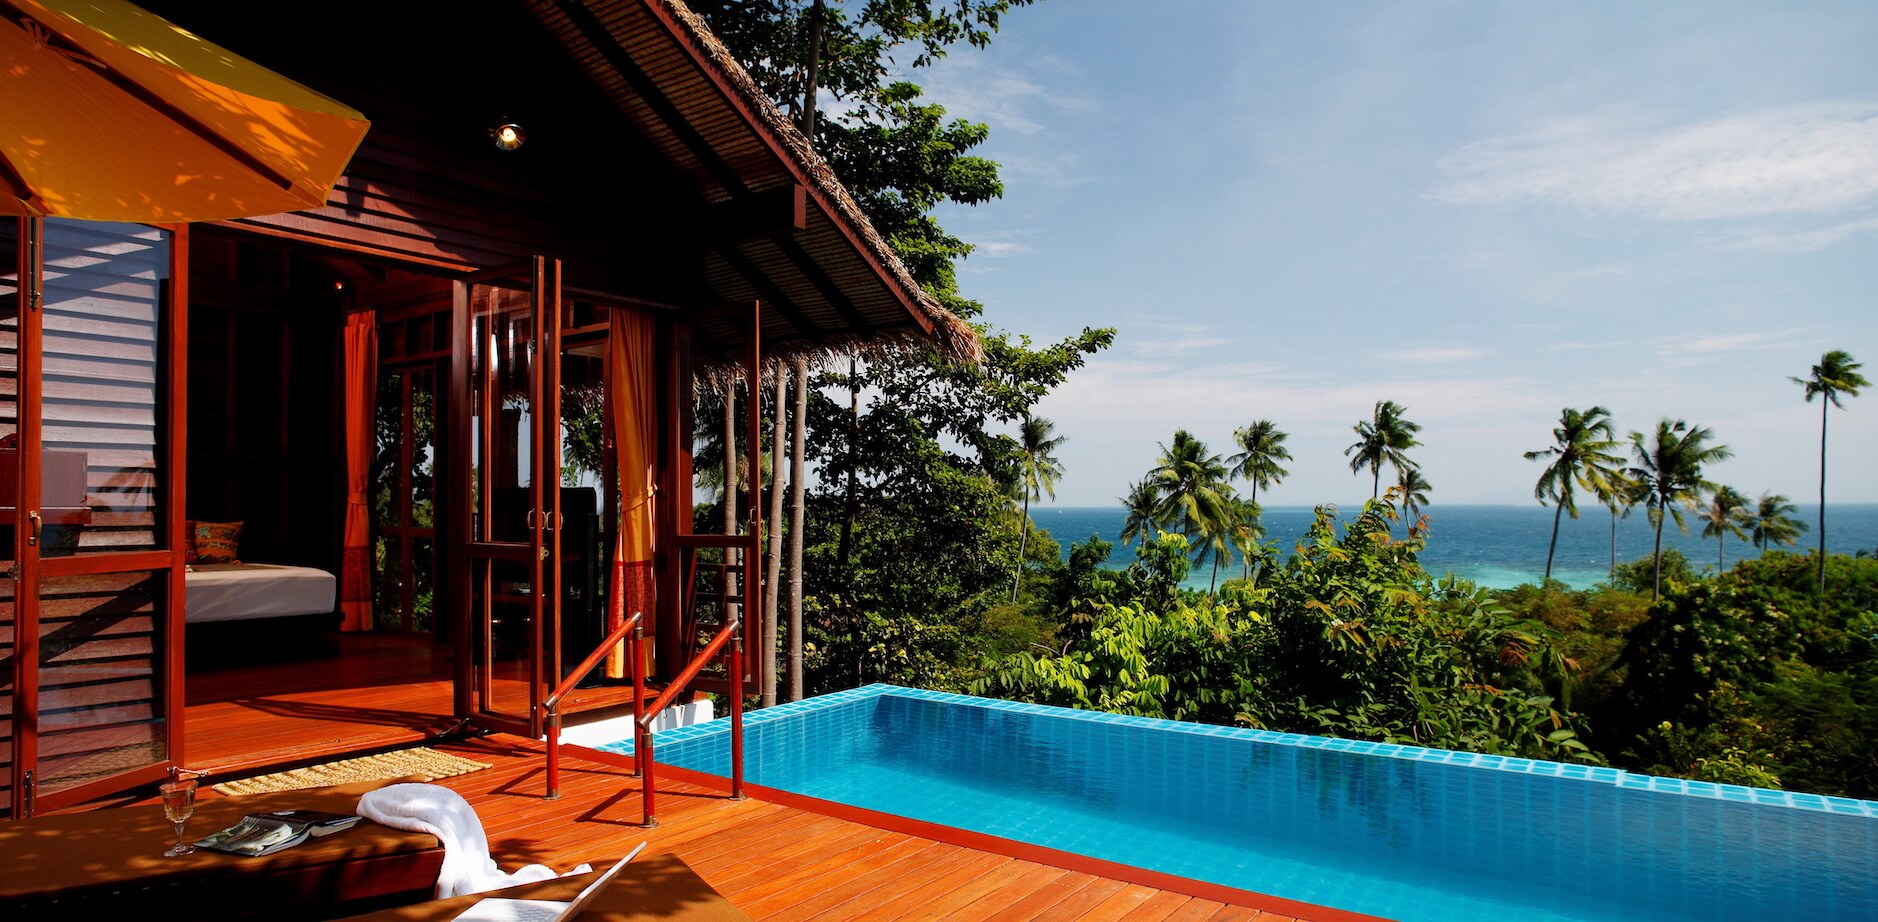 Eco luxurious pool villa at Zeavola Resort in Thailand